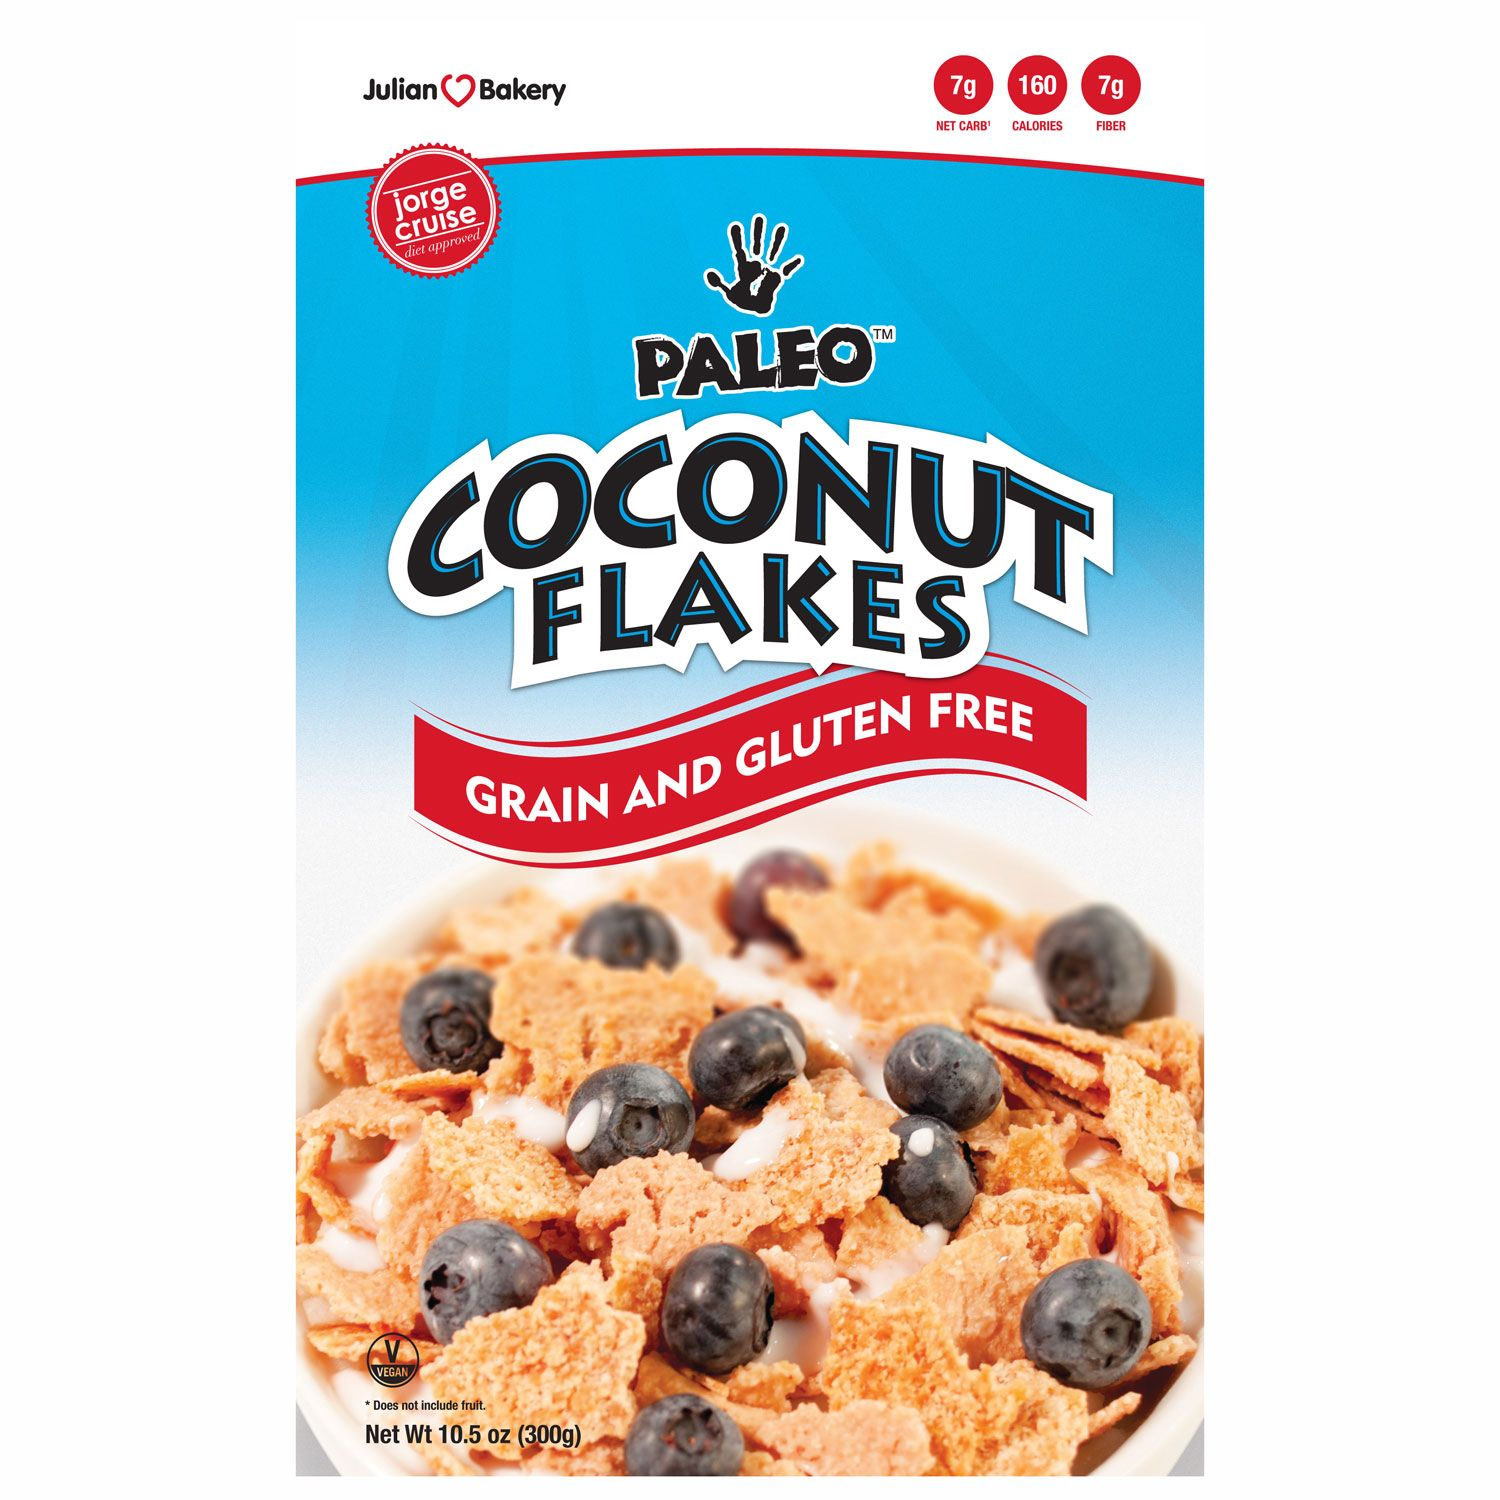 Introducing All New Paleo Coconut Flakes The Ultimate